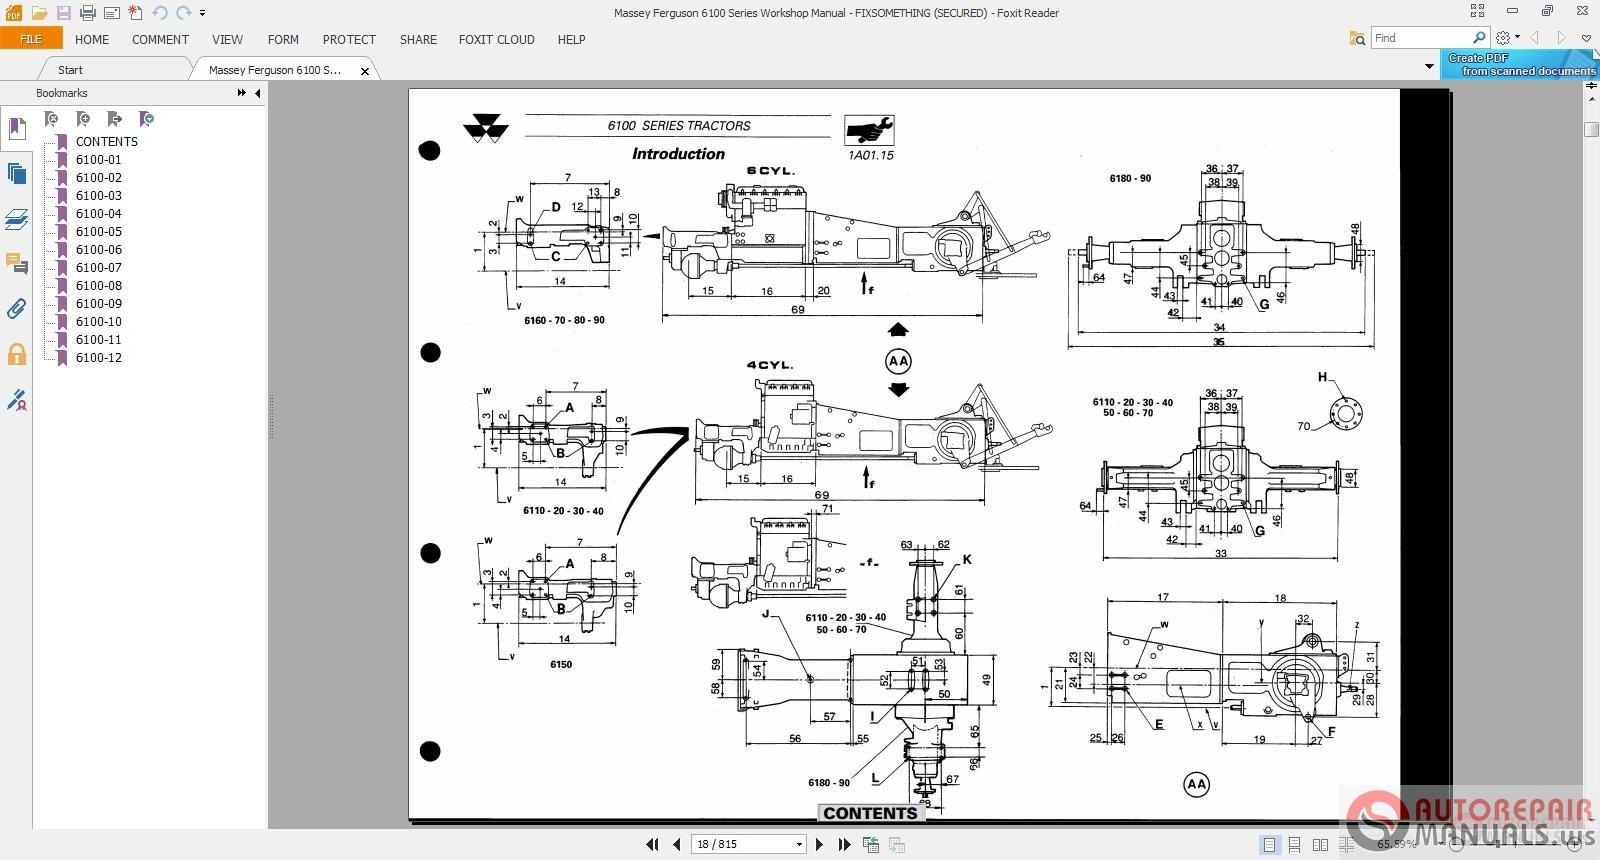 massey ferguson 235 wiring diagram Images Gallery